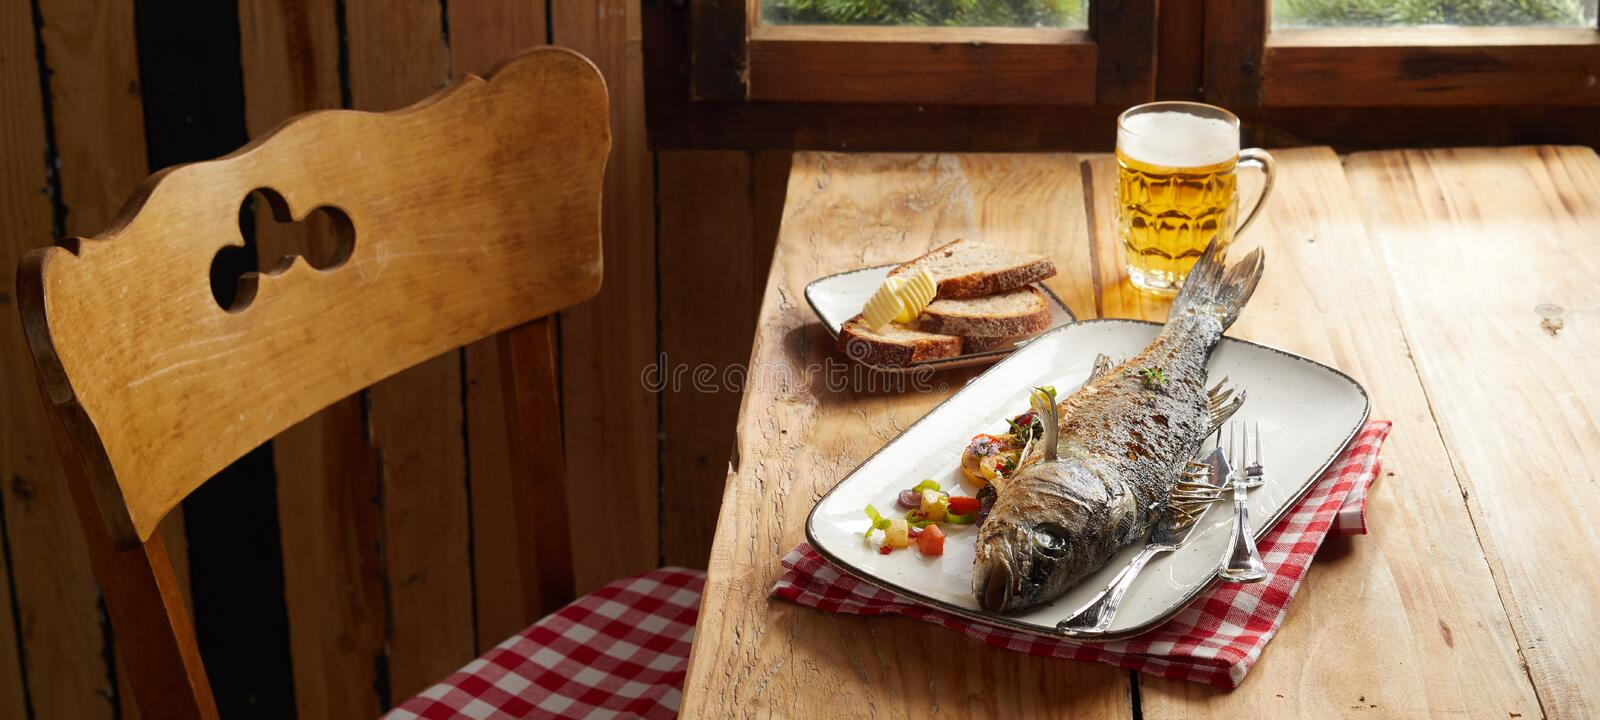 Tasty seafood pub lunch with oven roasted sea bass. Seasoned with fresh herbs and served with a mug of cold beer at a rustic table stock image